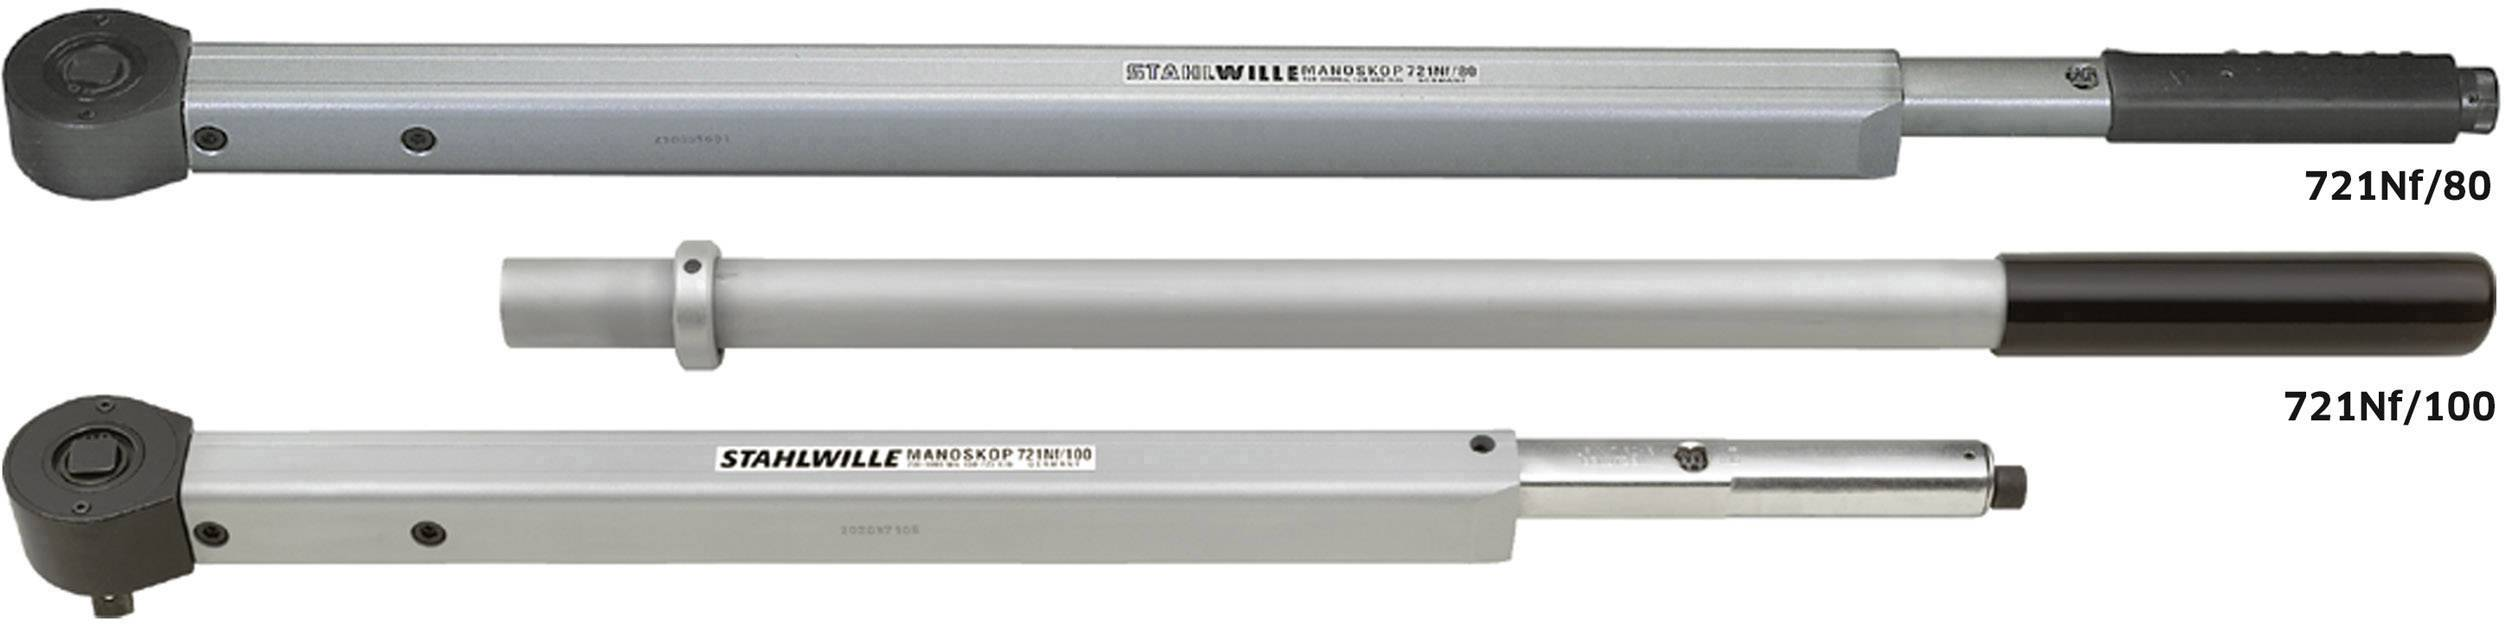 Torque Wrench with Cut-out